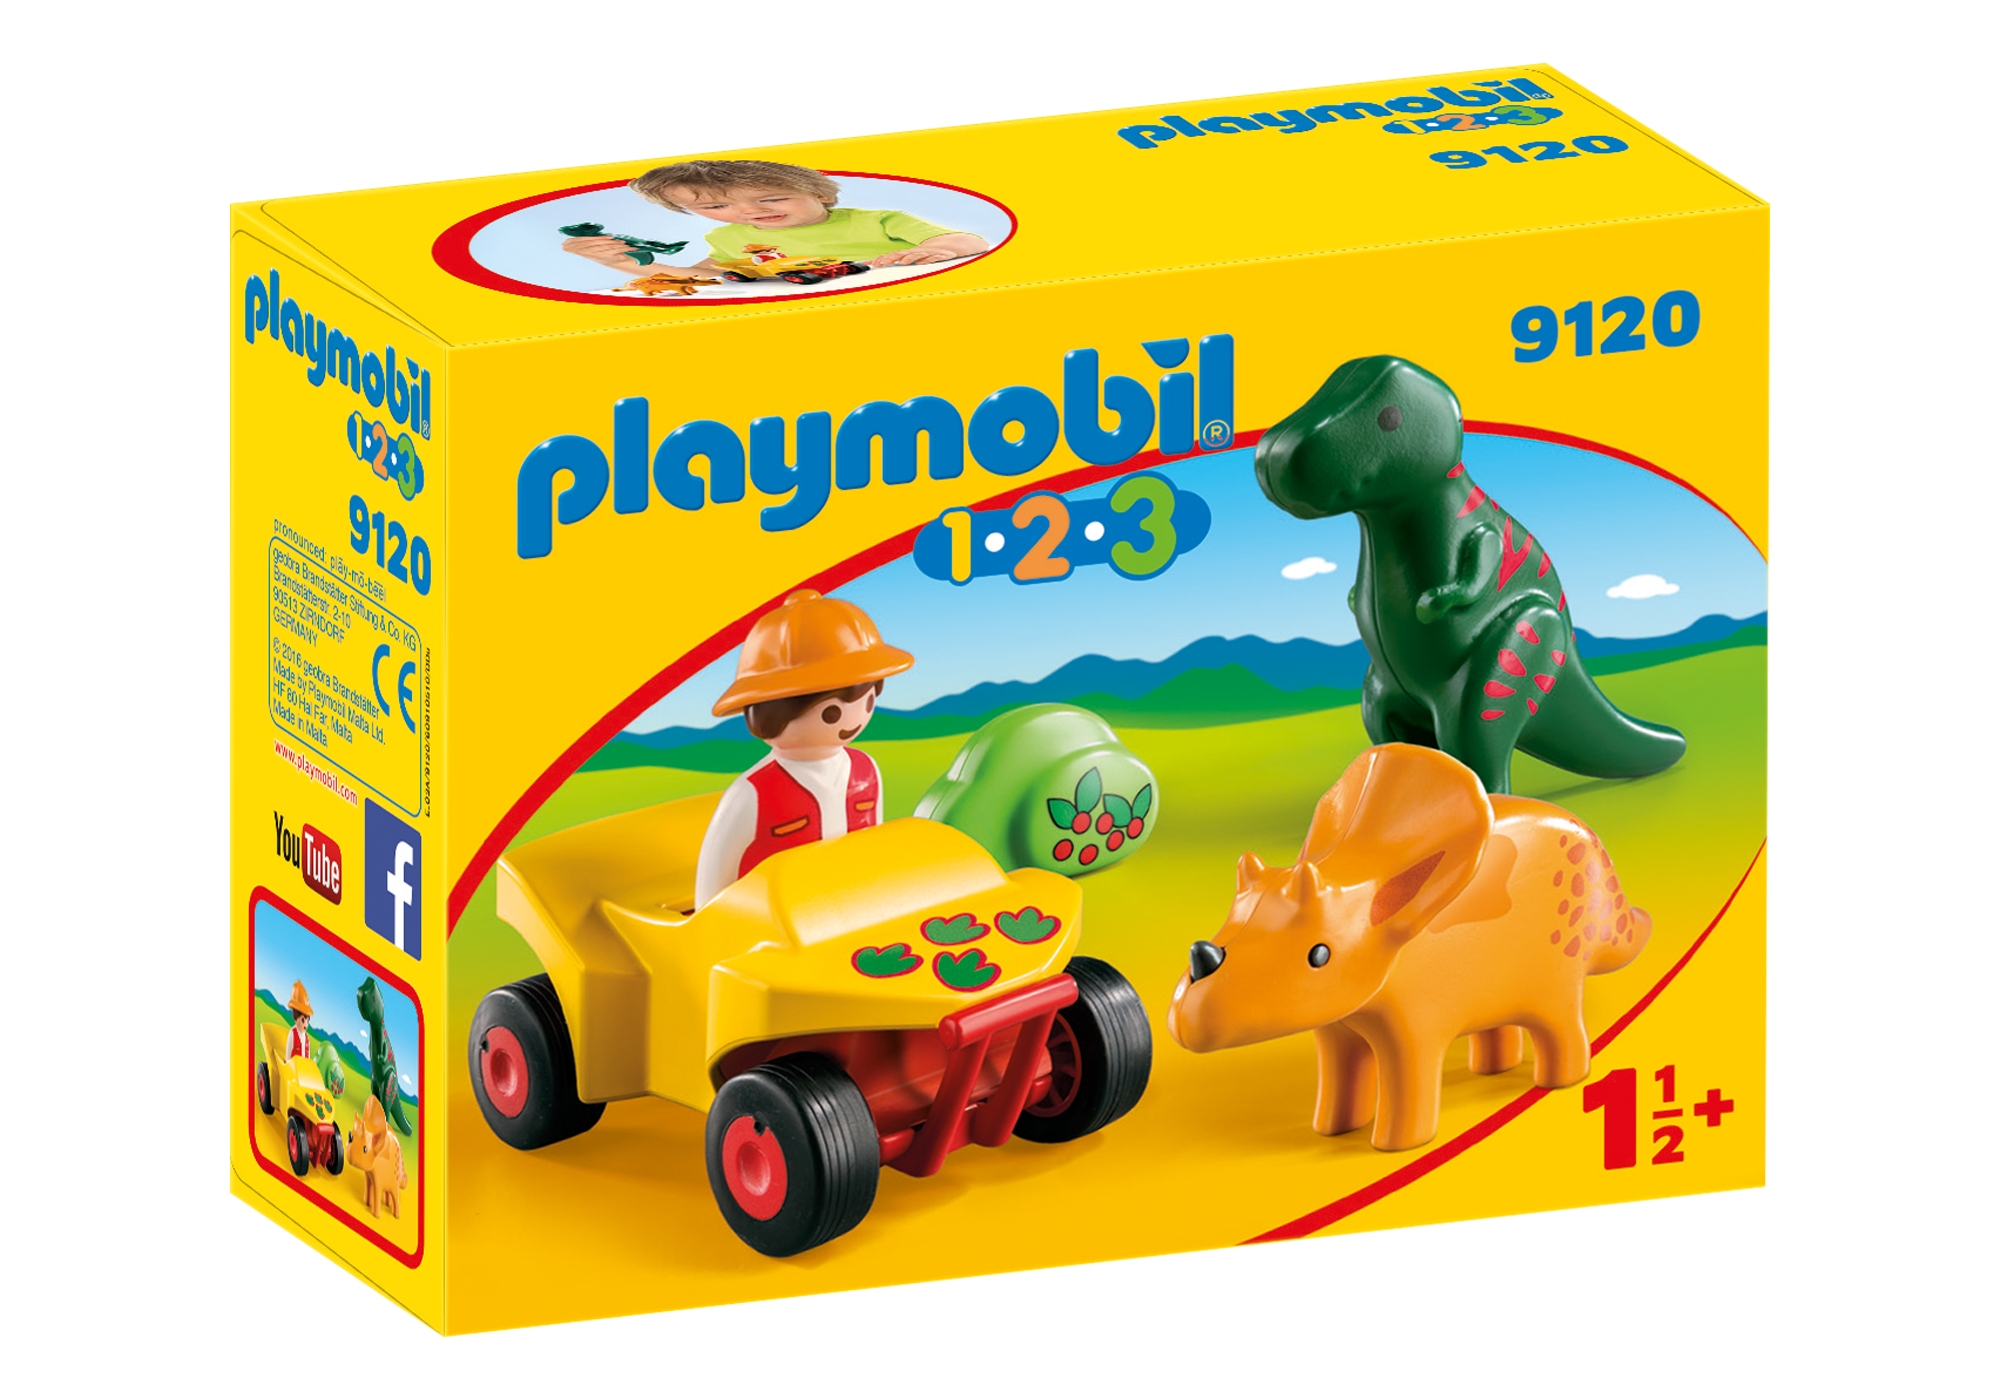 http://media.playmobil.com/i/playmobil/9120_product_box_front/Dinoforscher mit Quad